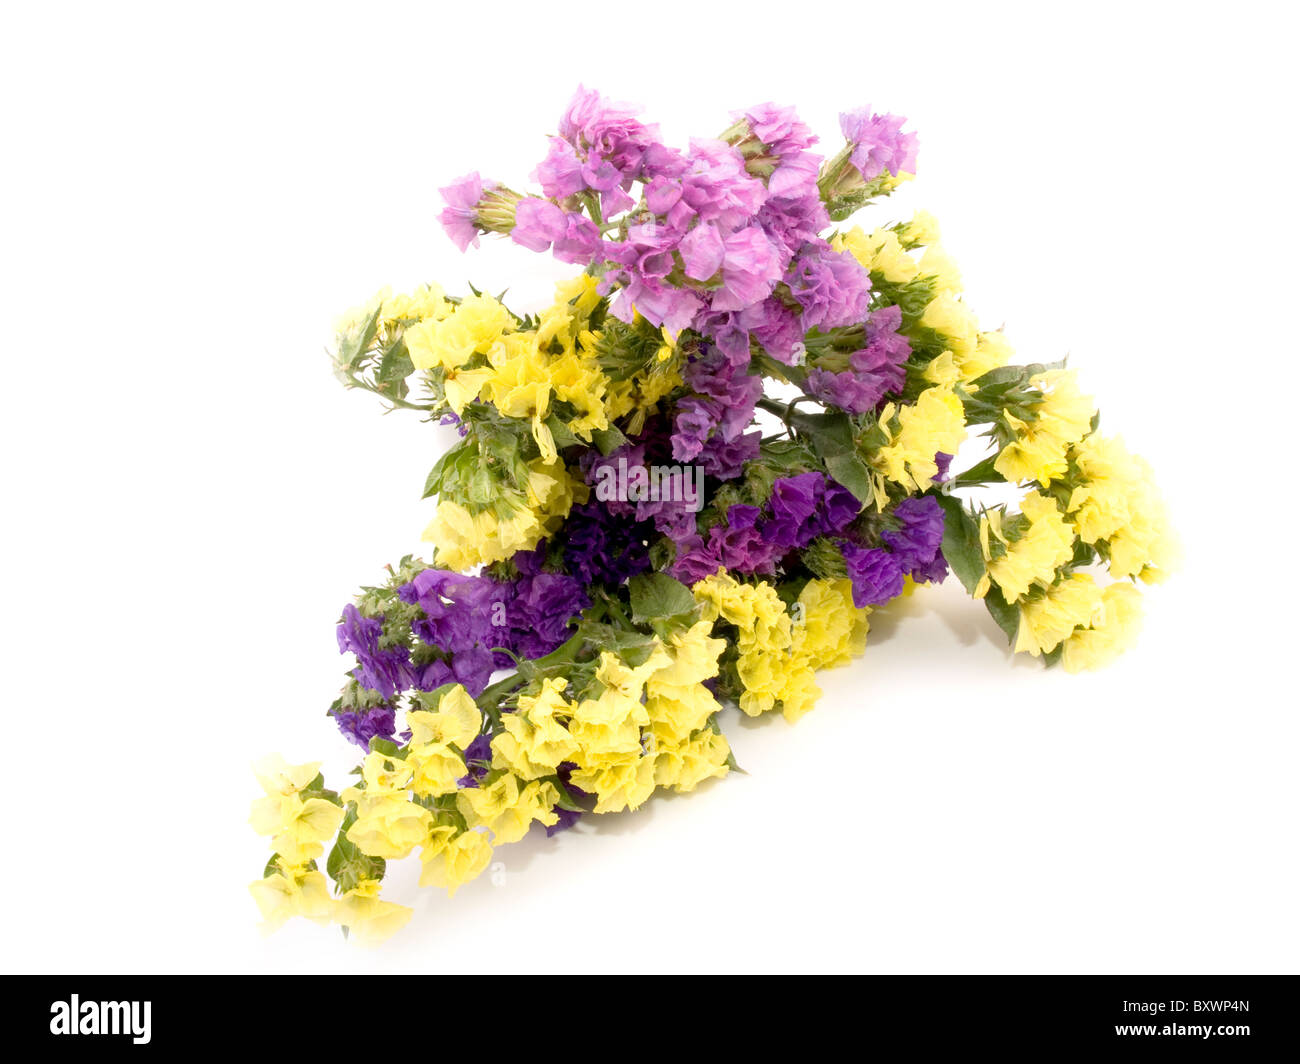 Statice flower stock photos statice flower stock images alamy bouquet of beautiful statice flowers on white background stock image mightylinksfo